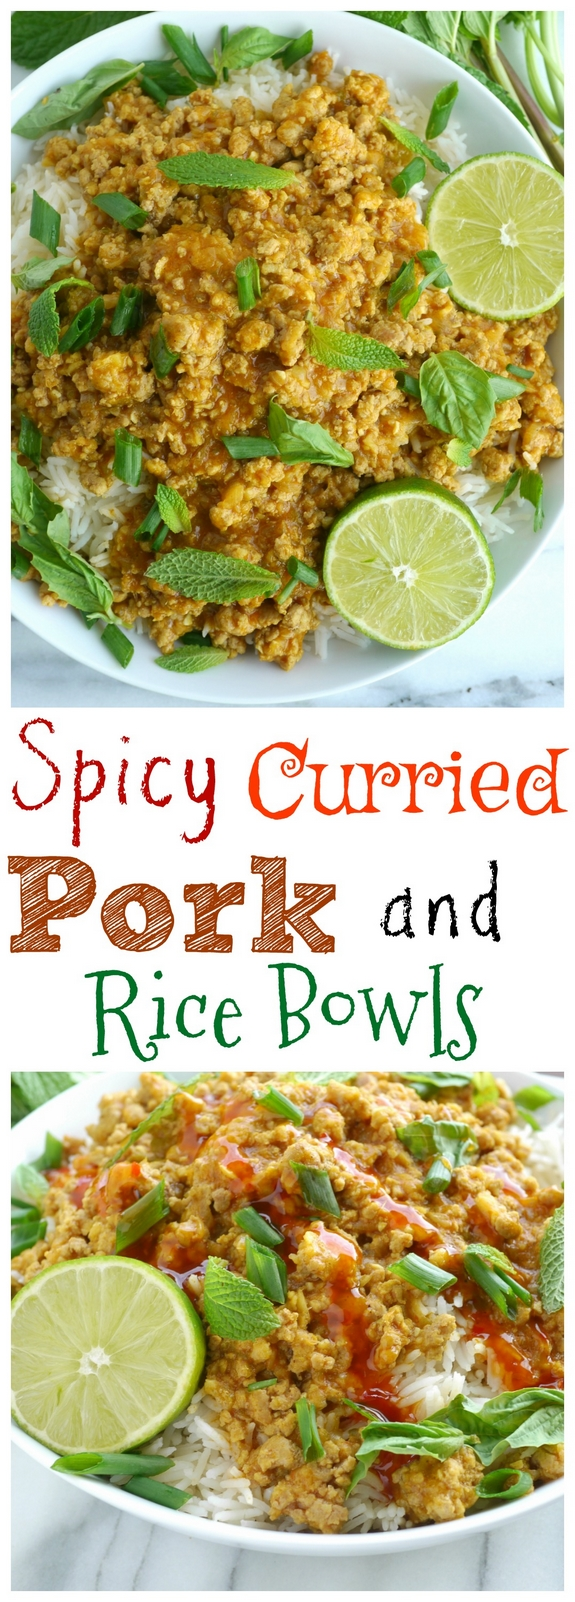 Spicy Curried Pork and Rice Bowls are a dinner you don't want to miss